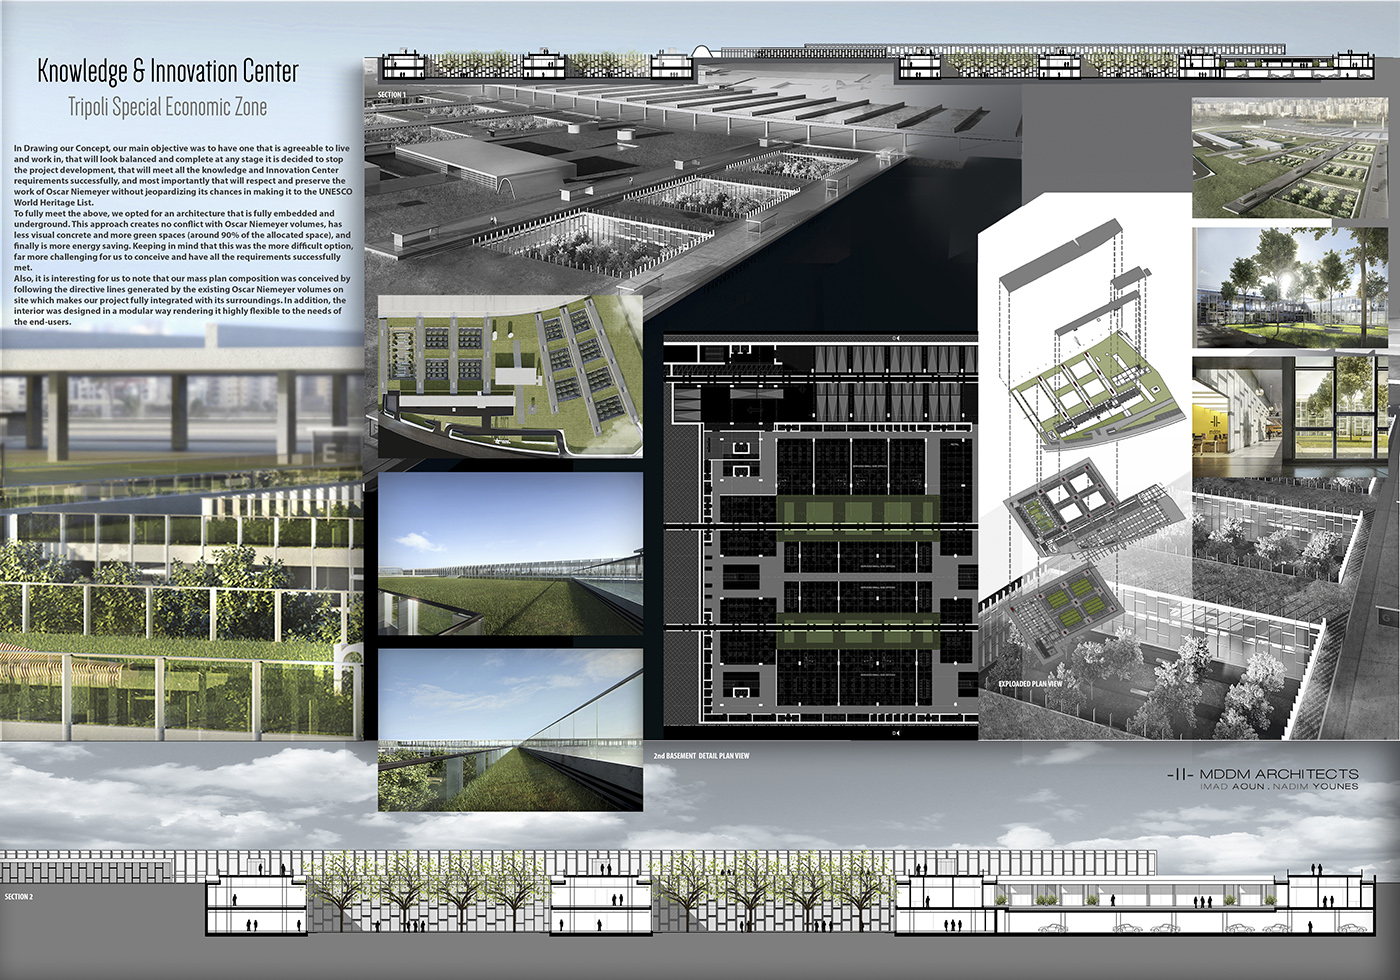 MDDM-Architects-Studio-First-Prize-Competition-knowledge-innovation-centre-architecture-shared-offices-oscar-niemeyer